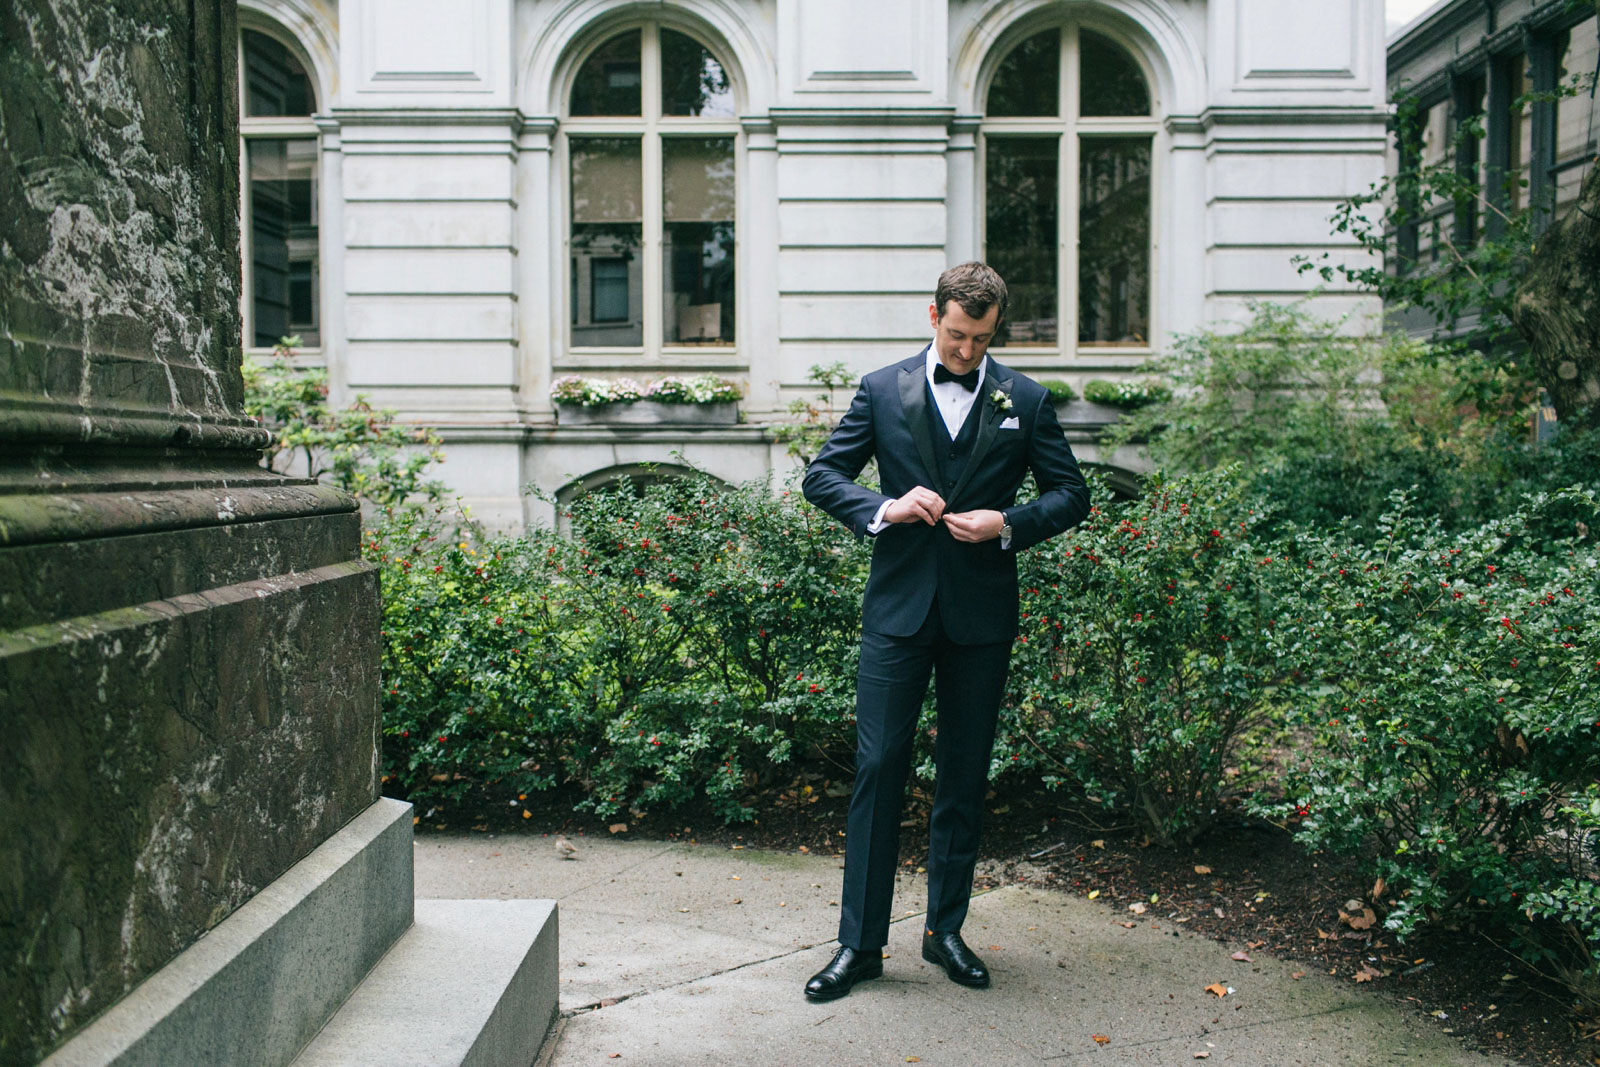 groom buttoning his jacket while he waits for bride in the gardens of old boston city hall